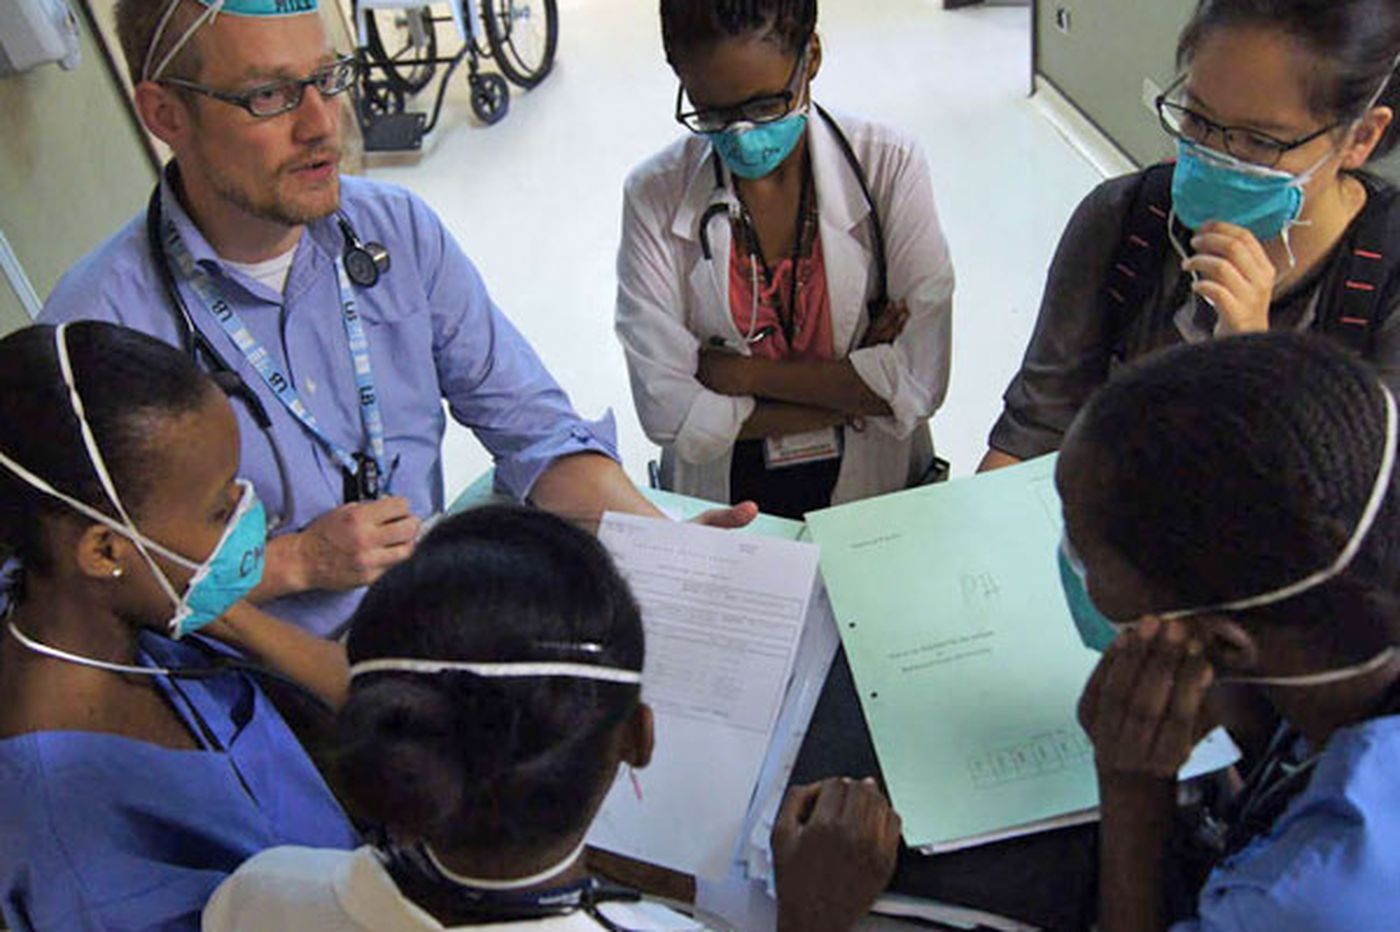 Penn helps - and learns from - Botswana's HIV epidemic